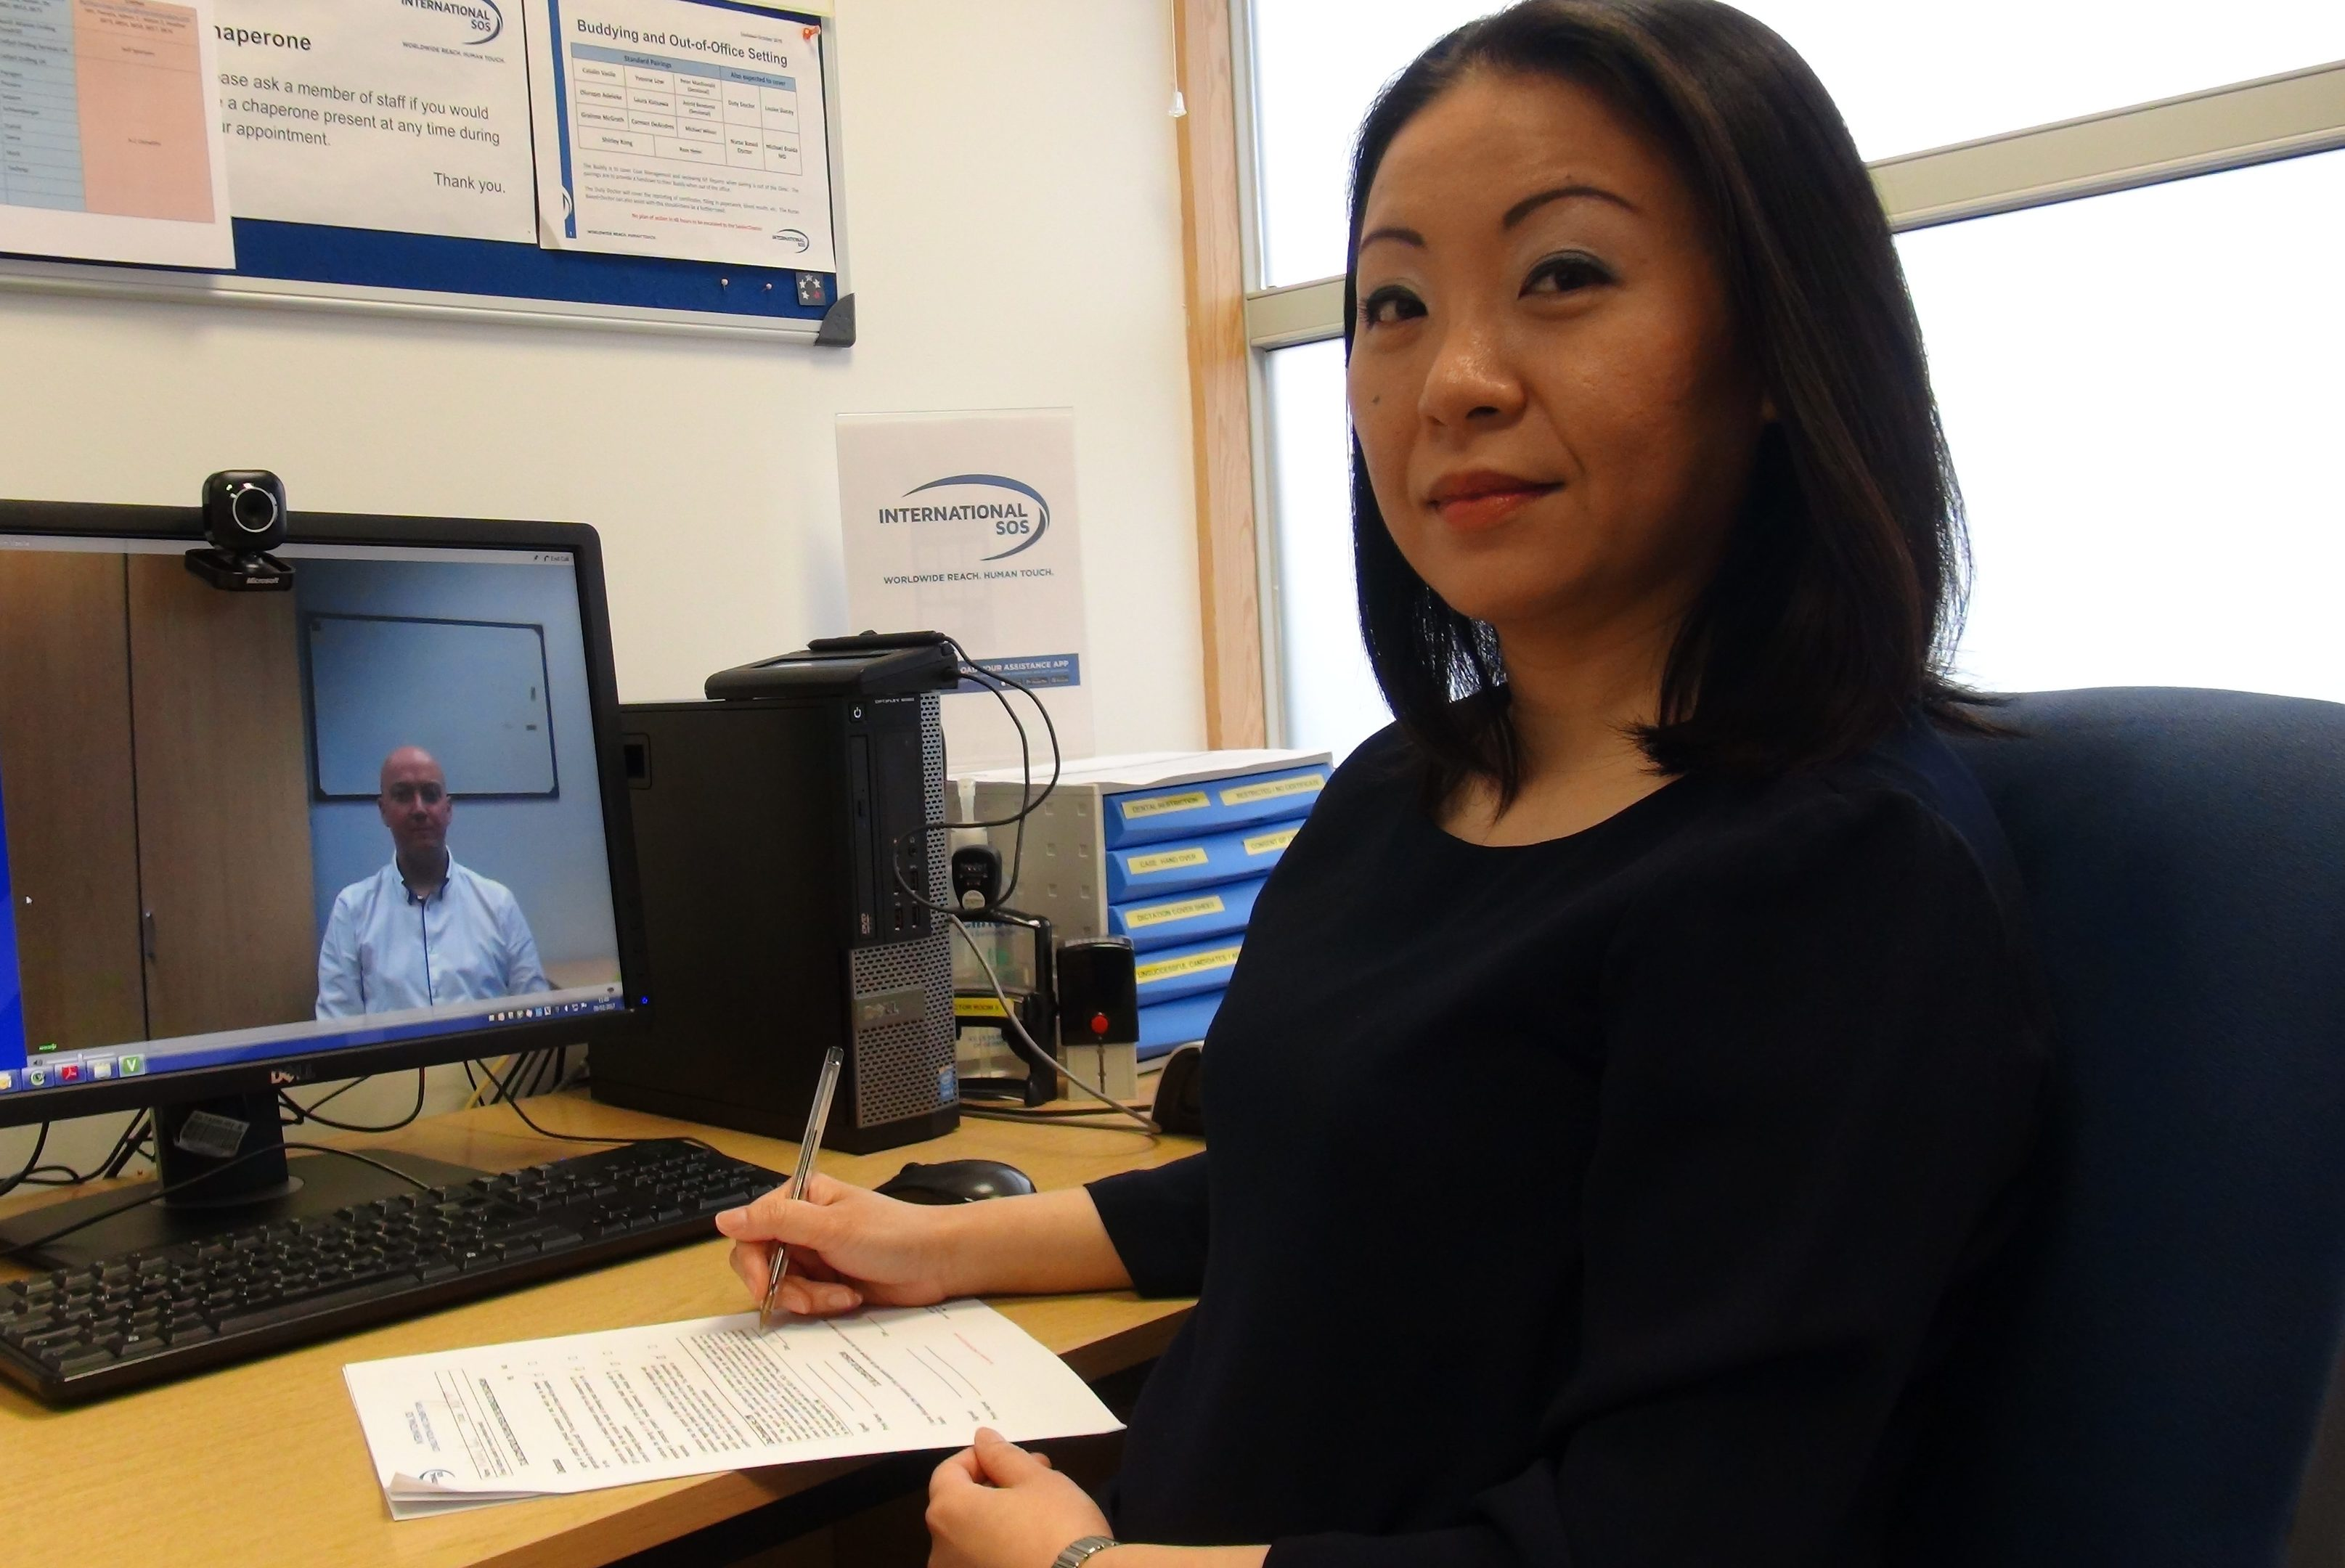 Shirley Kong, senior medical officer at International SOS